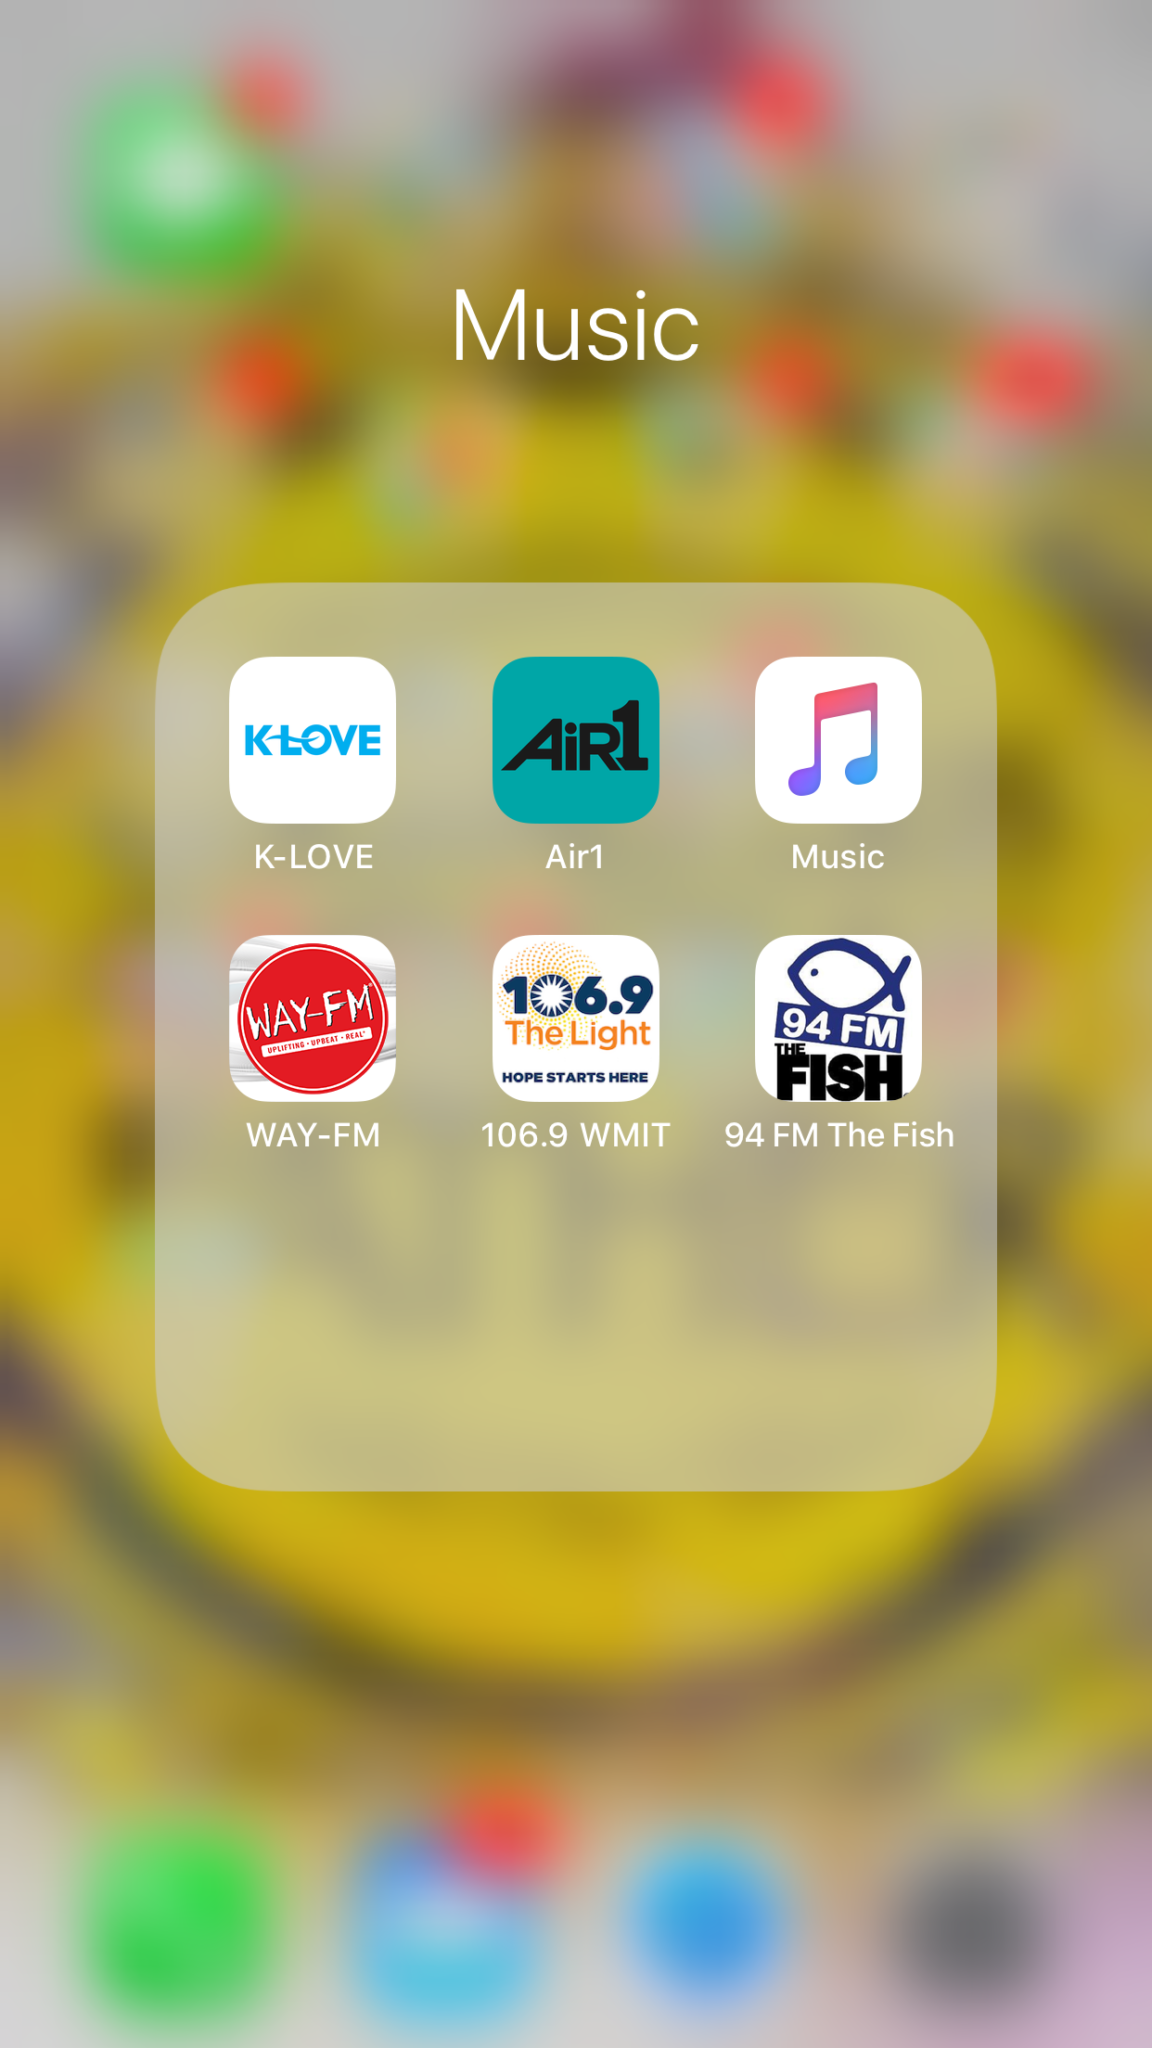 Christian Music Radio Apps Courageous Christian Father Christian Music Artists Music Radio Christian Music